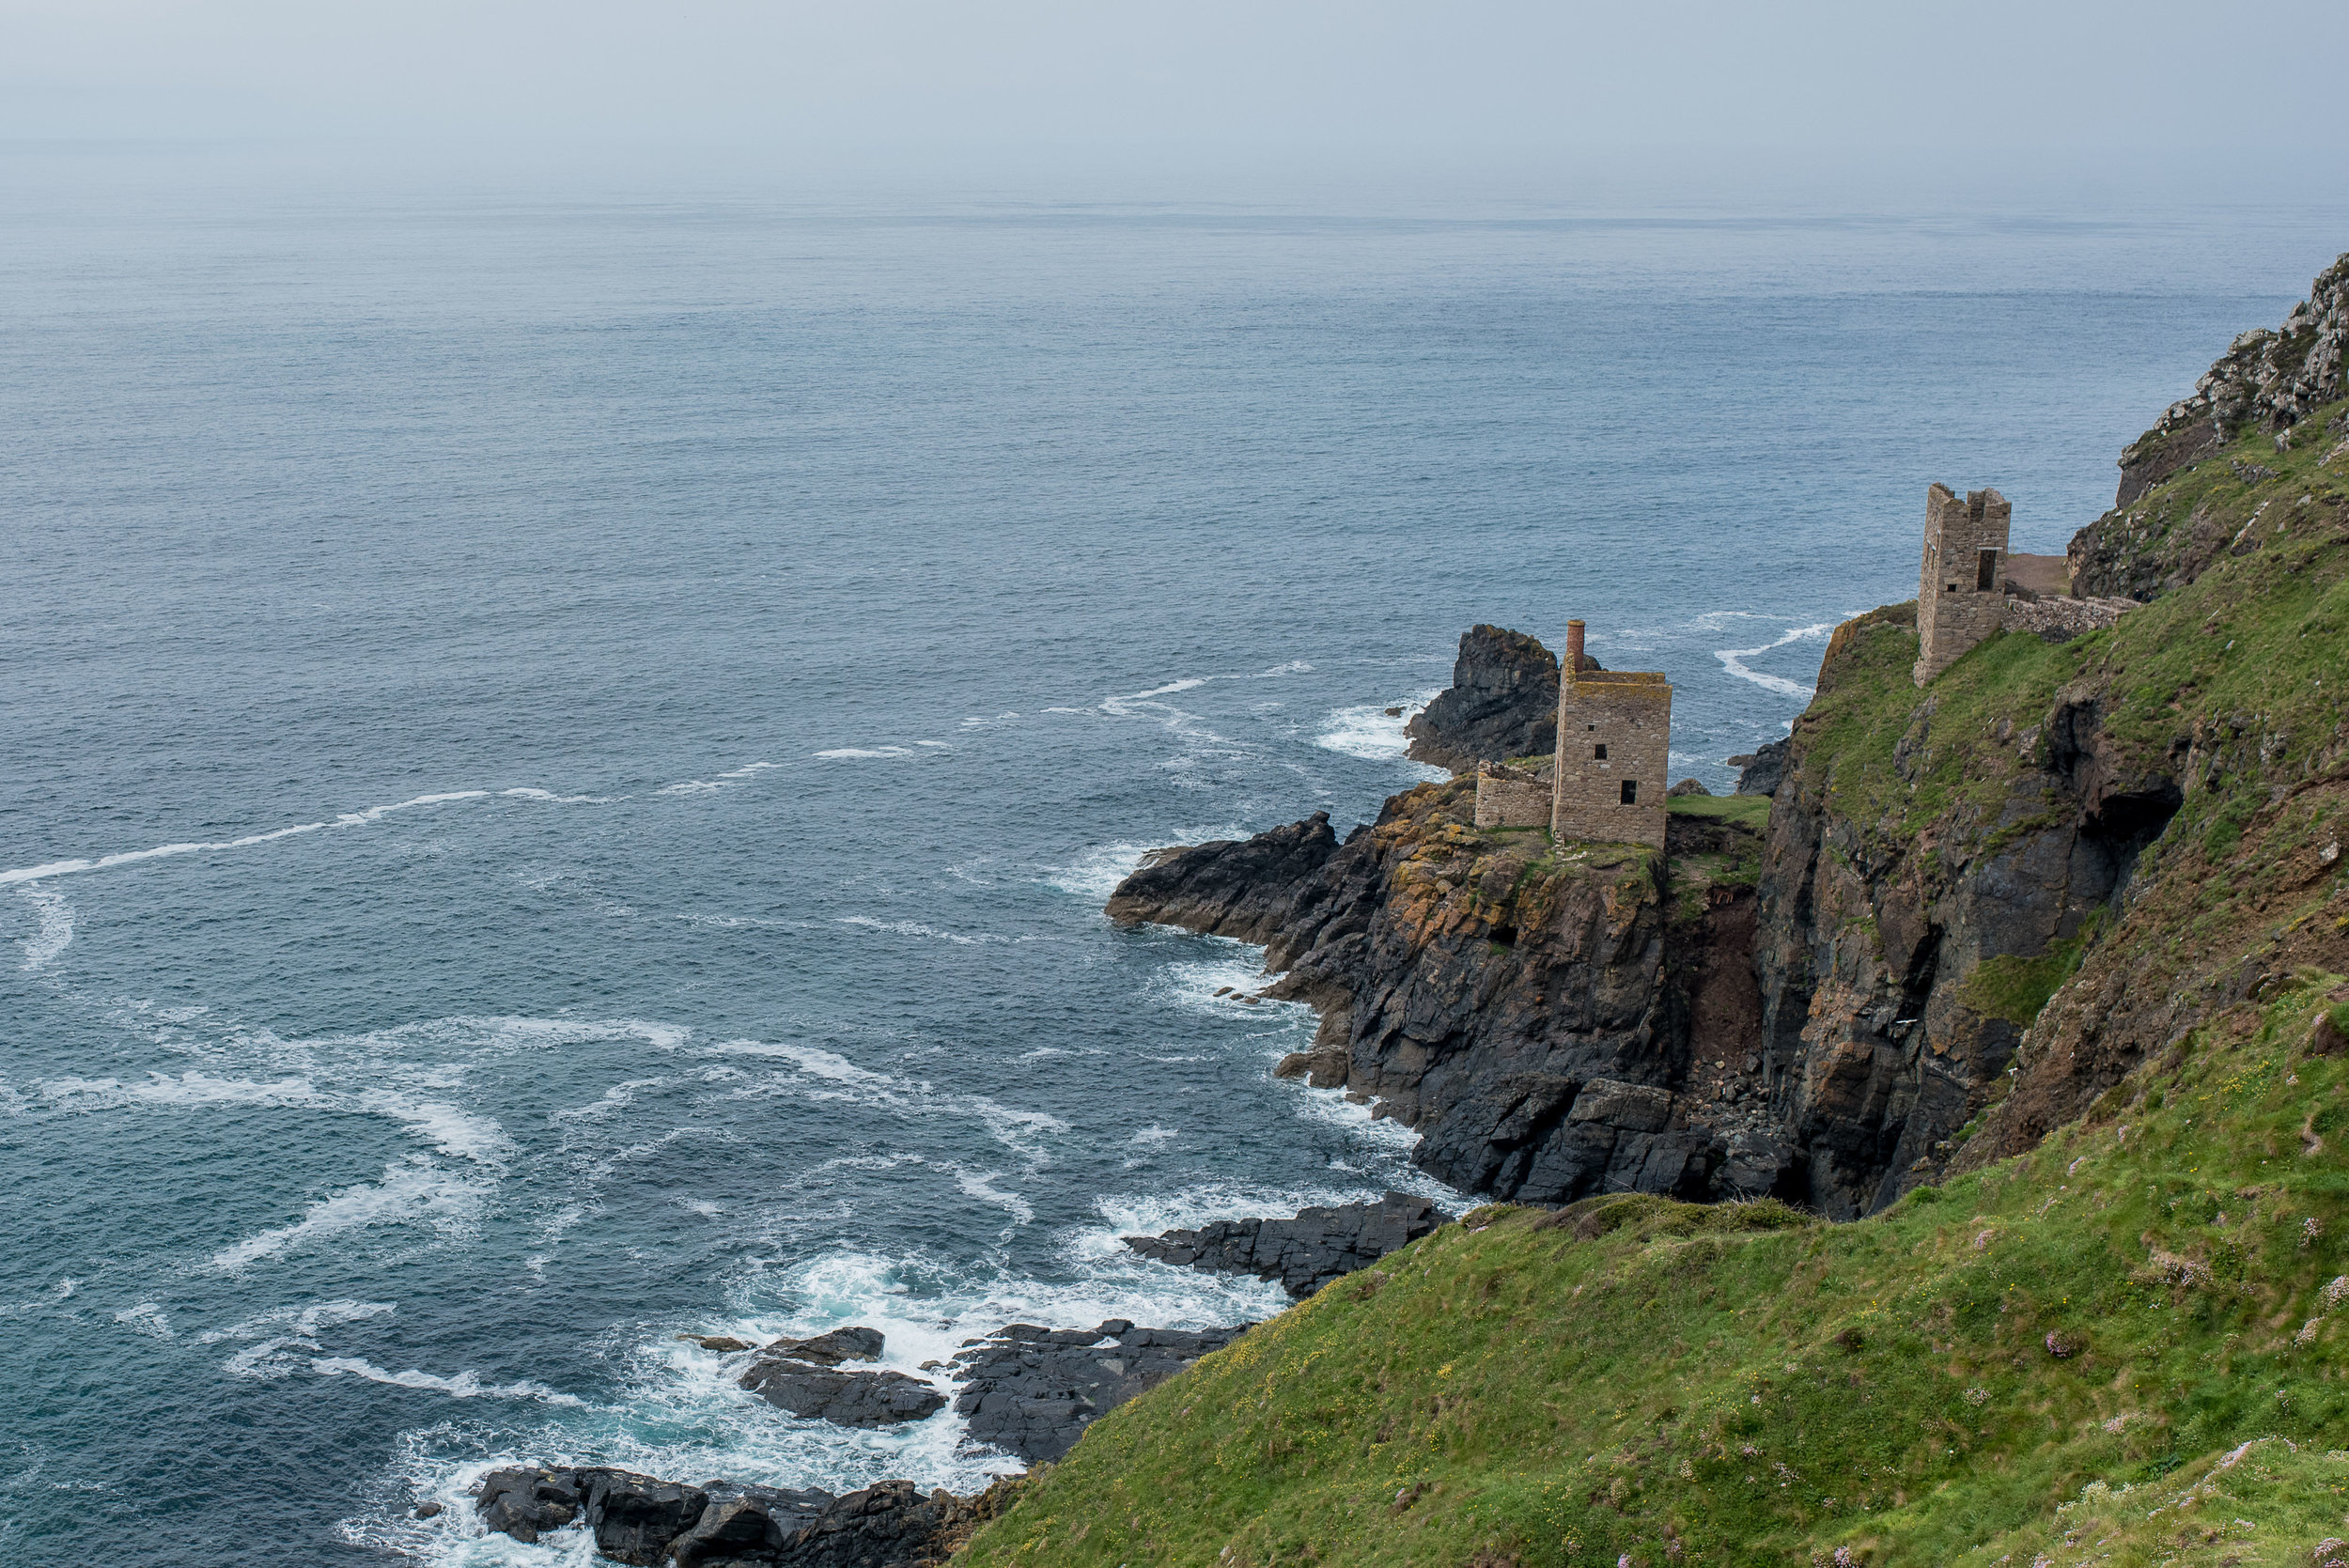 This view serves as the cover art for more than one edition of the  Poldark  books.